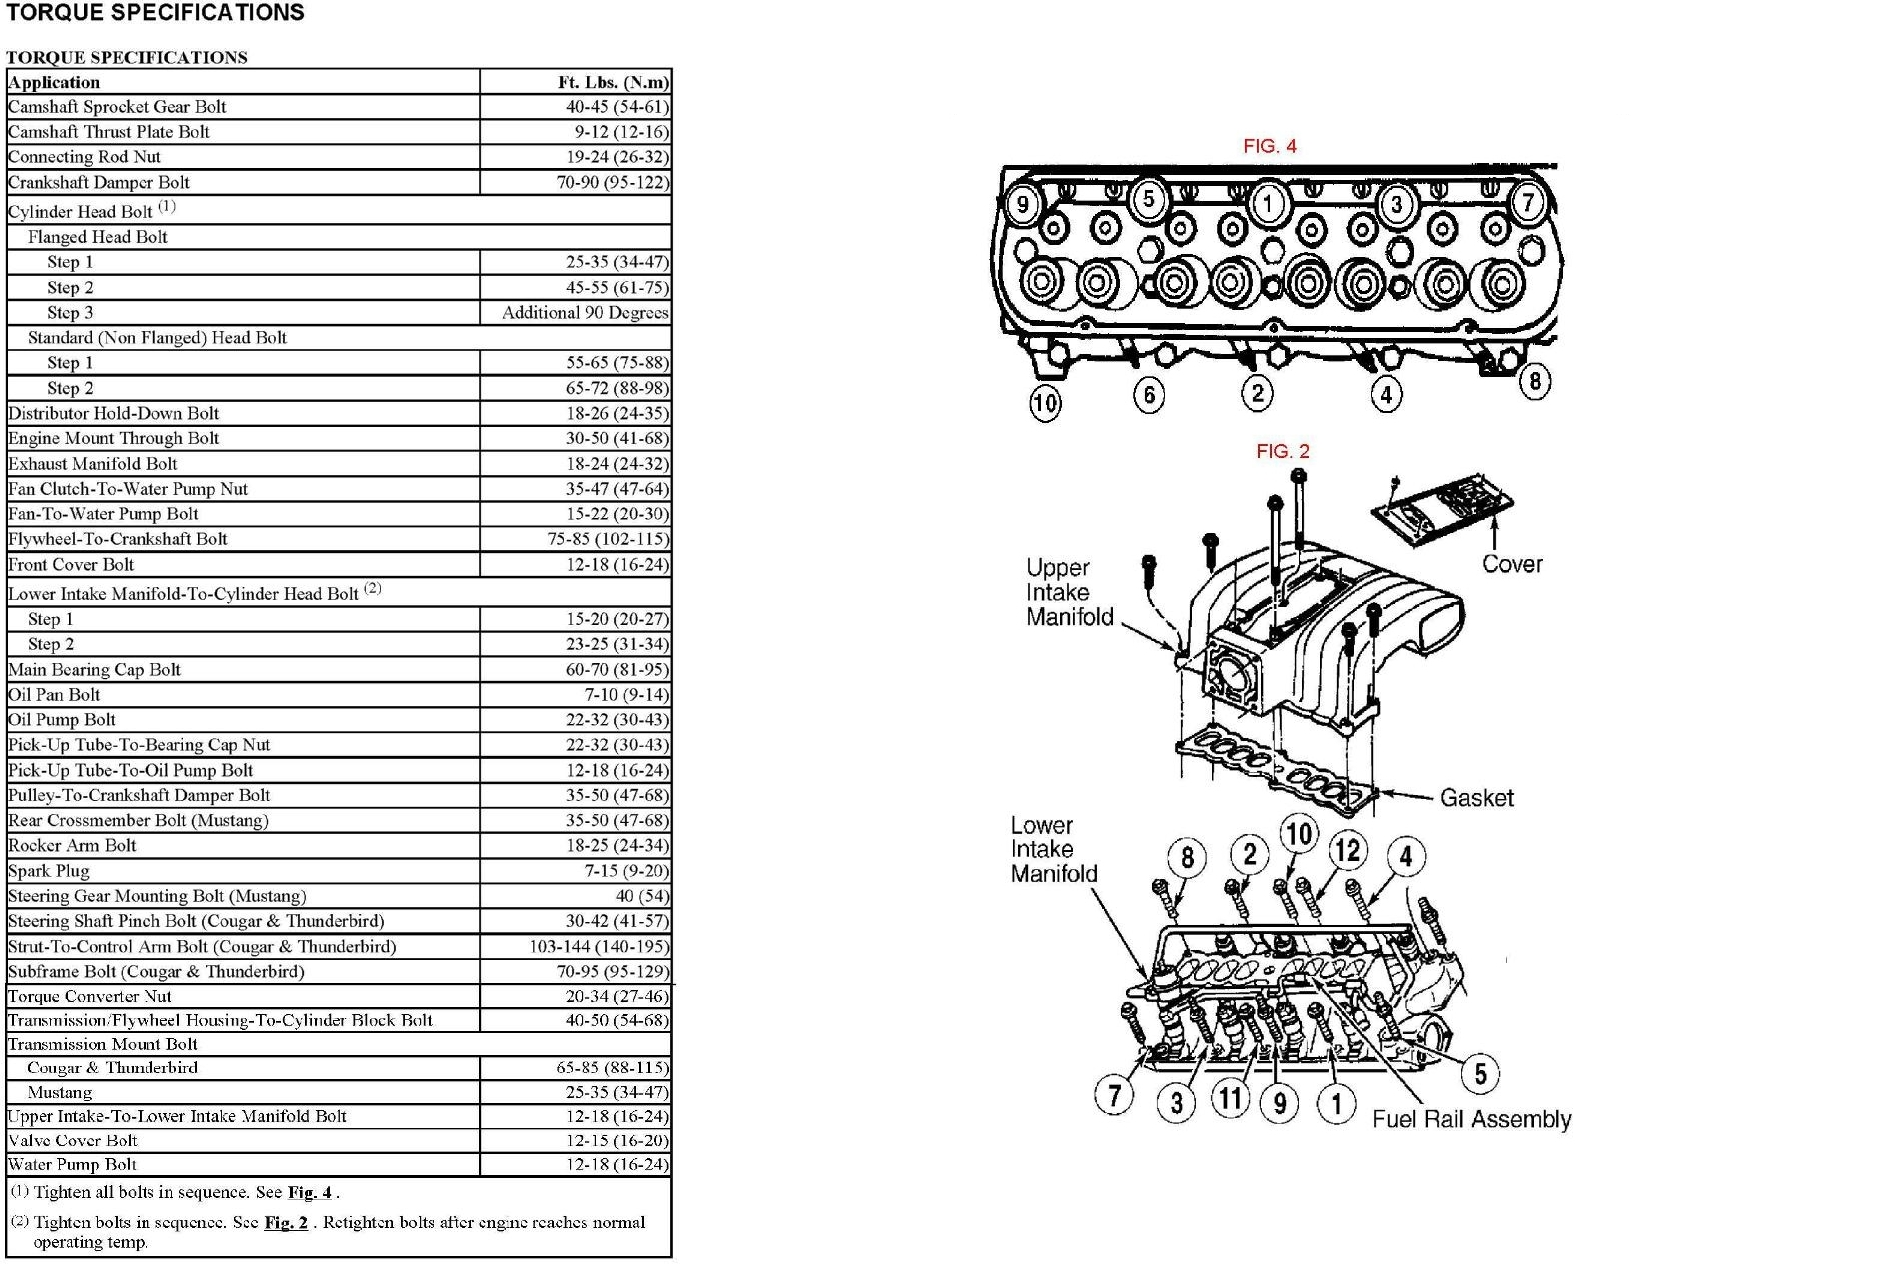 92 Ford Mustang Engine Diagram Worksheet And Wiring Ranger To 98 Mustangs Everything You Need Know About 1979 1993 Foxbody Rh Americanmuscle Com 1995